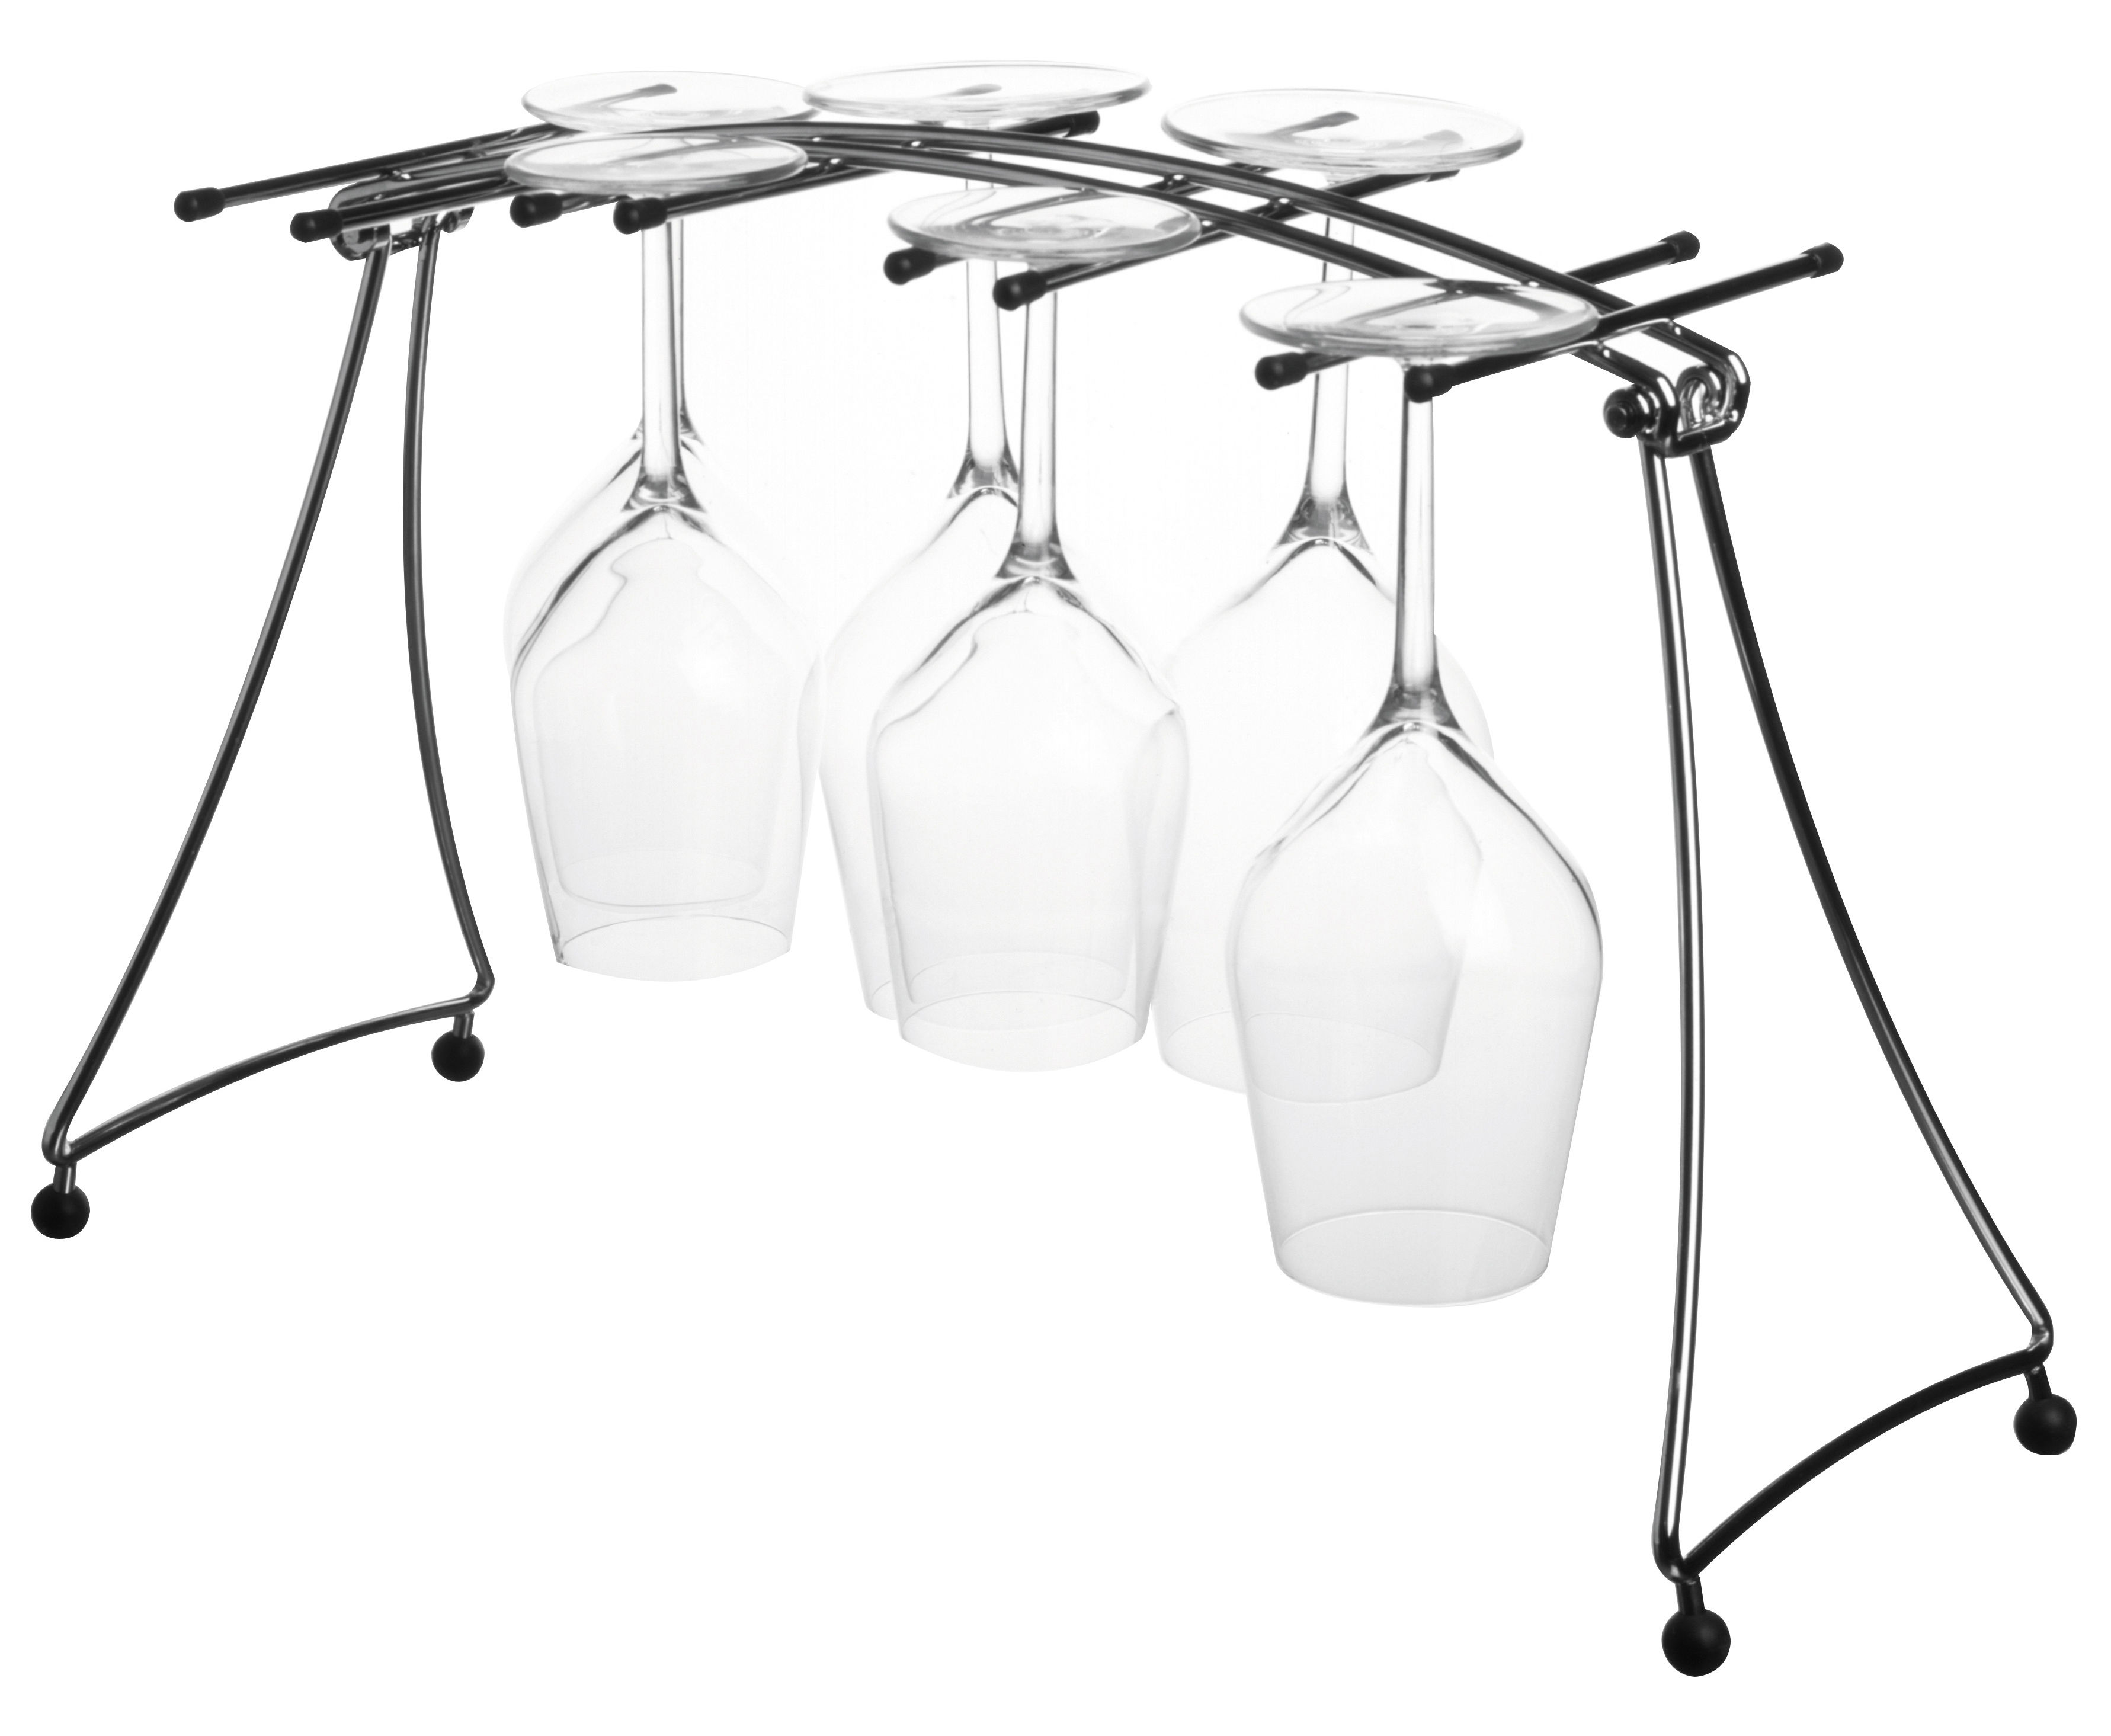 Kitchenware - Cool Kitchen Gadgets - Draining rack - for wine glasses - Foldable by L'Atelier du Vin - Metal / black - Metal, Rubber